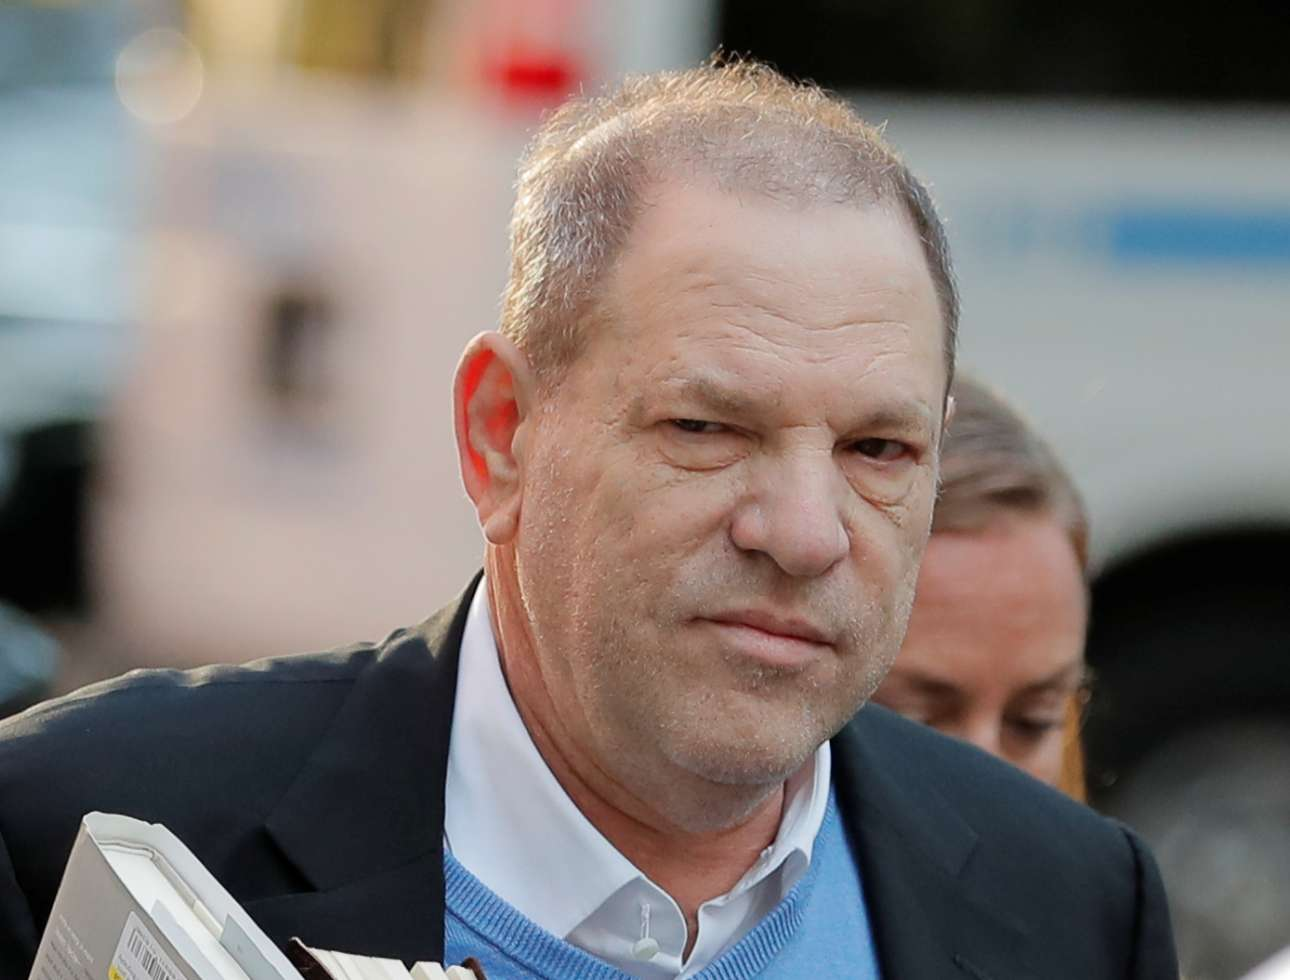 2018-05-25T113304Z_366024555_RC156AFFF8D0_RTRMADP_3_PEOPLE-HARVEY-WEINSTEIN